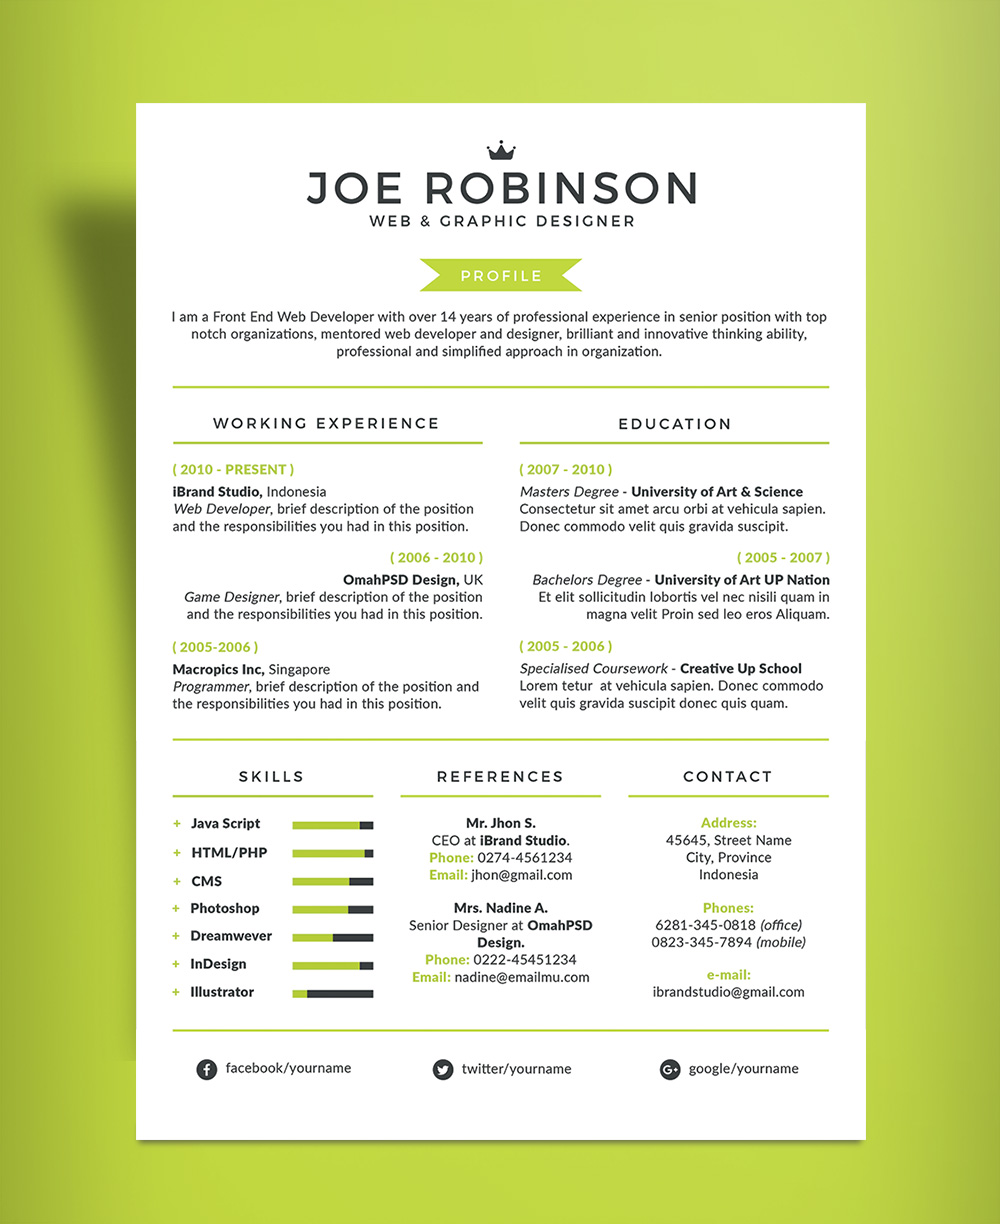 Elegant & Professional Resume (CV) Design Template in 3 Different Colors PSD File (3)